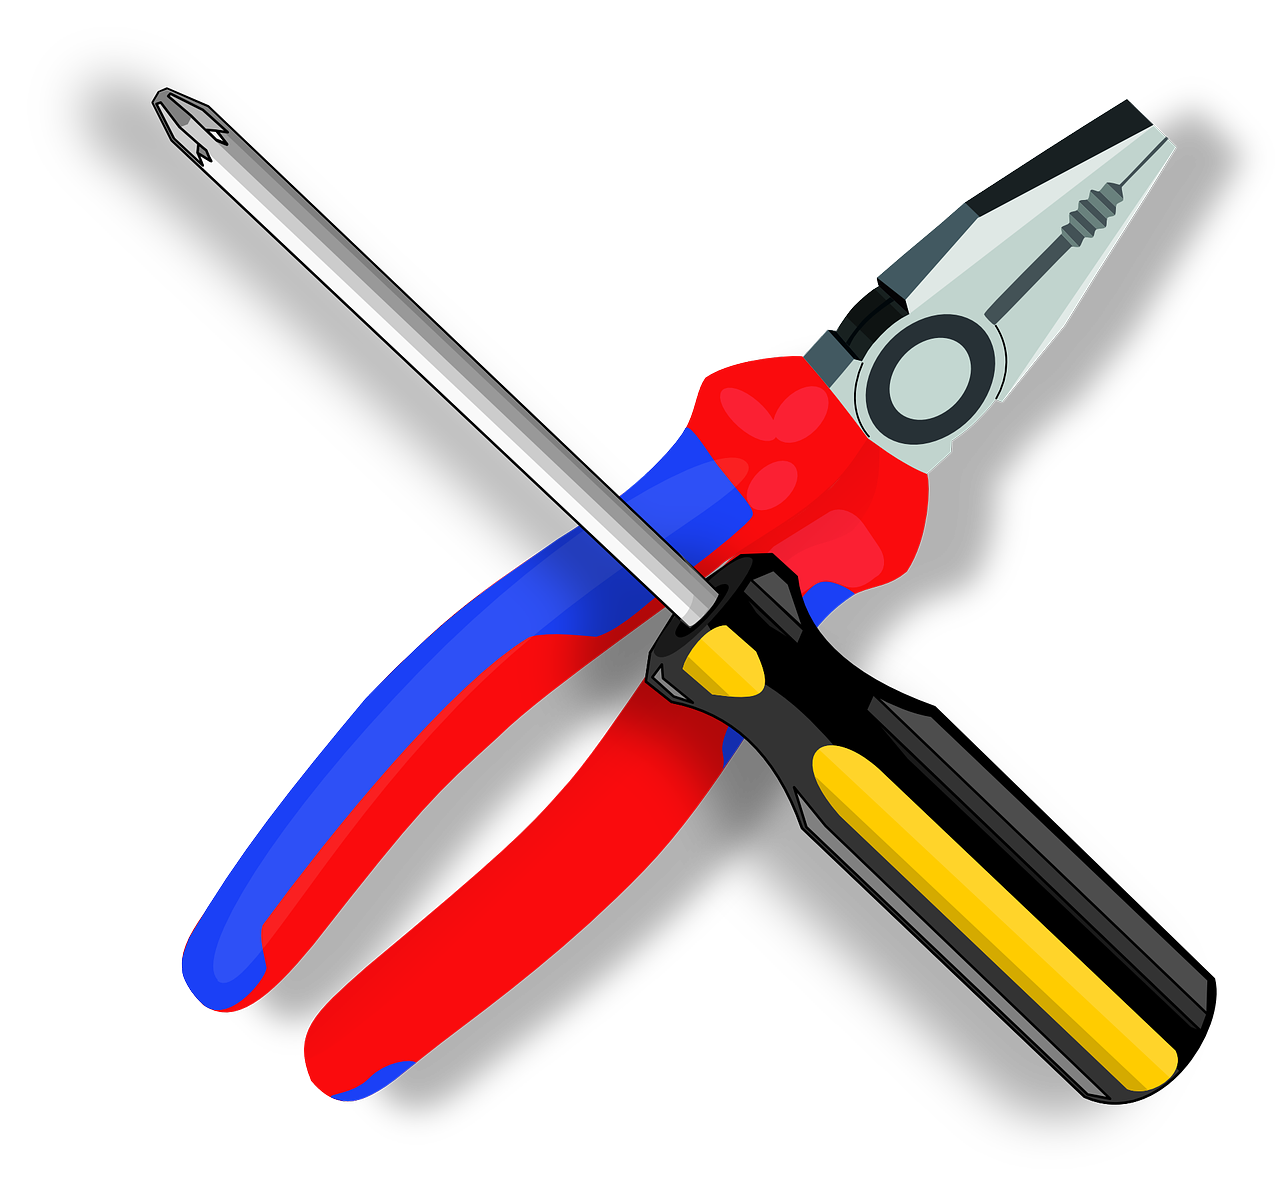 Clip art free panda. Electrical clipart electrical hand tool